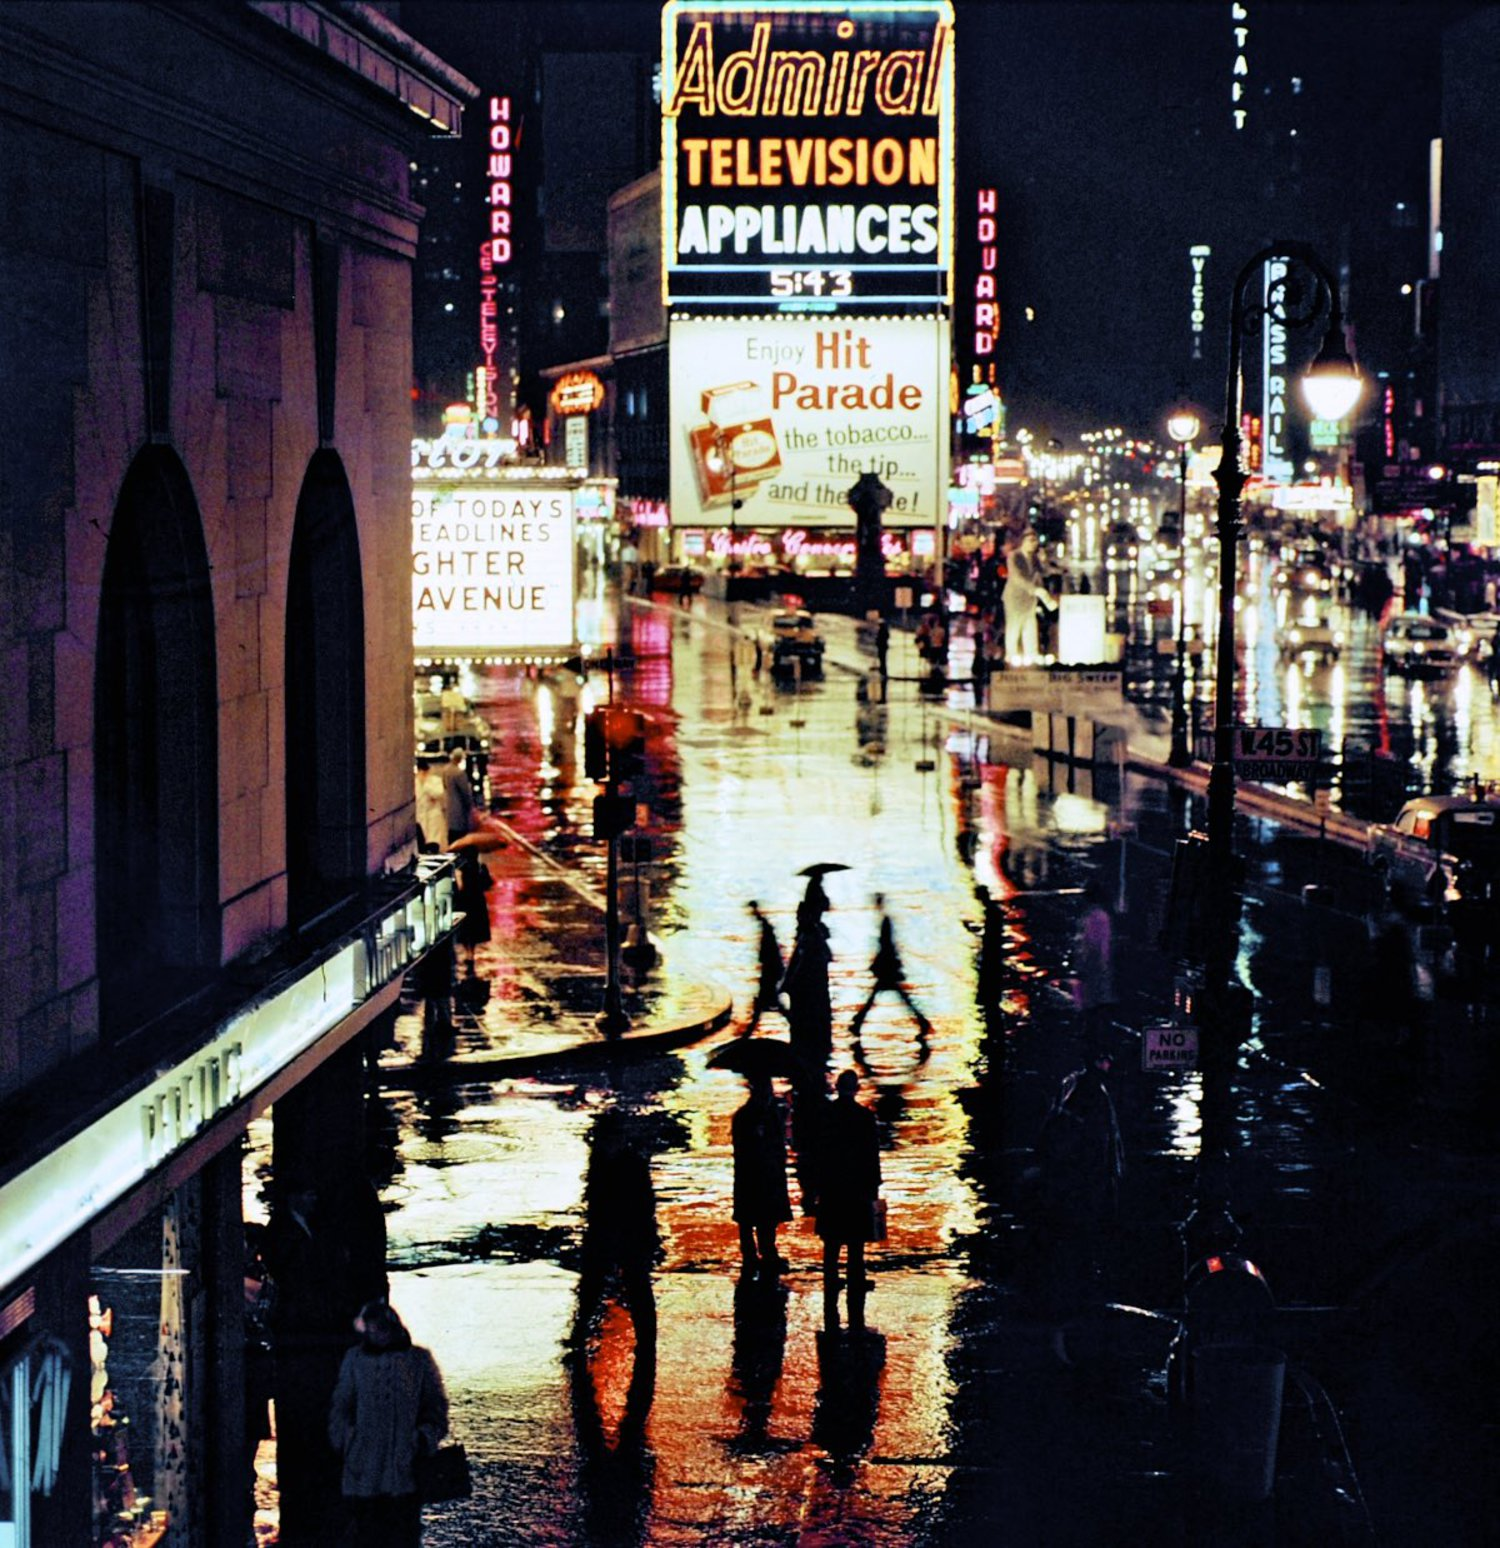 1957 Times Square.